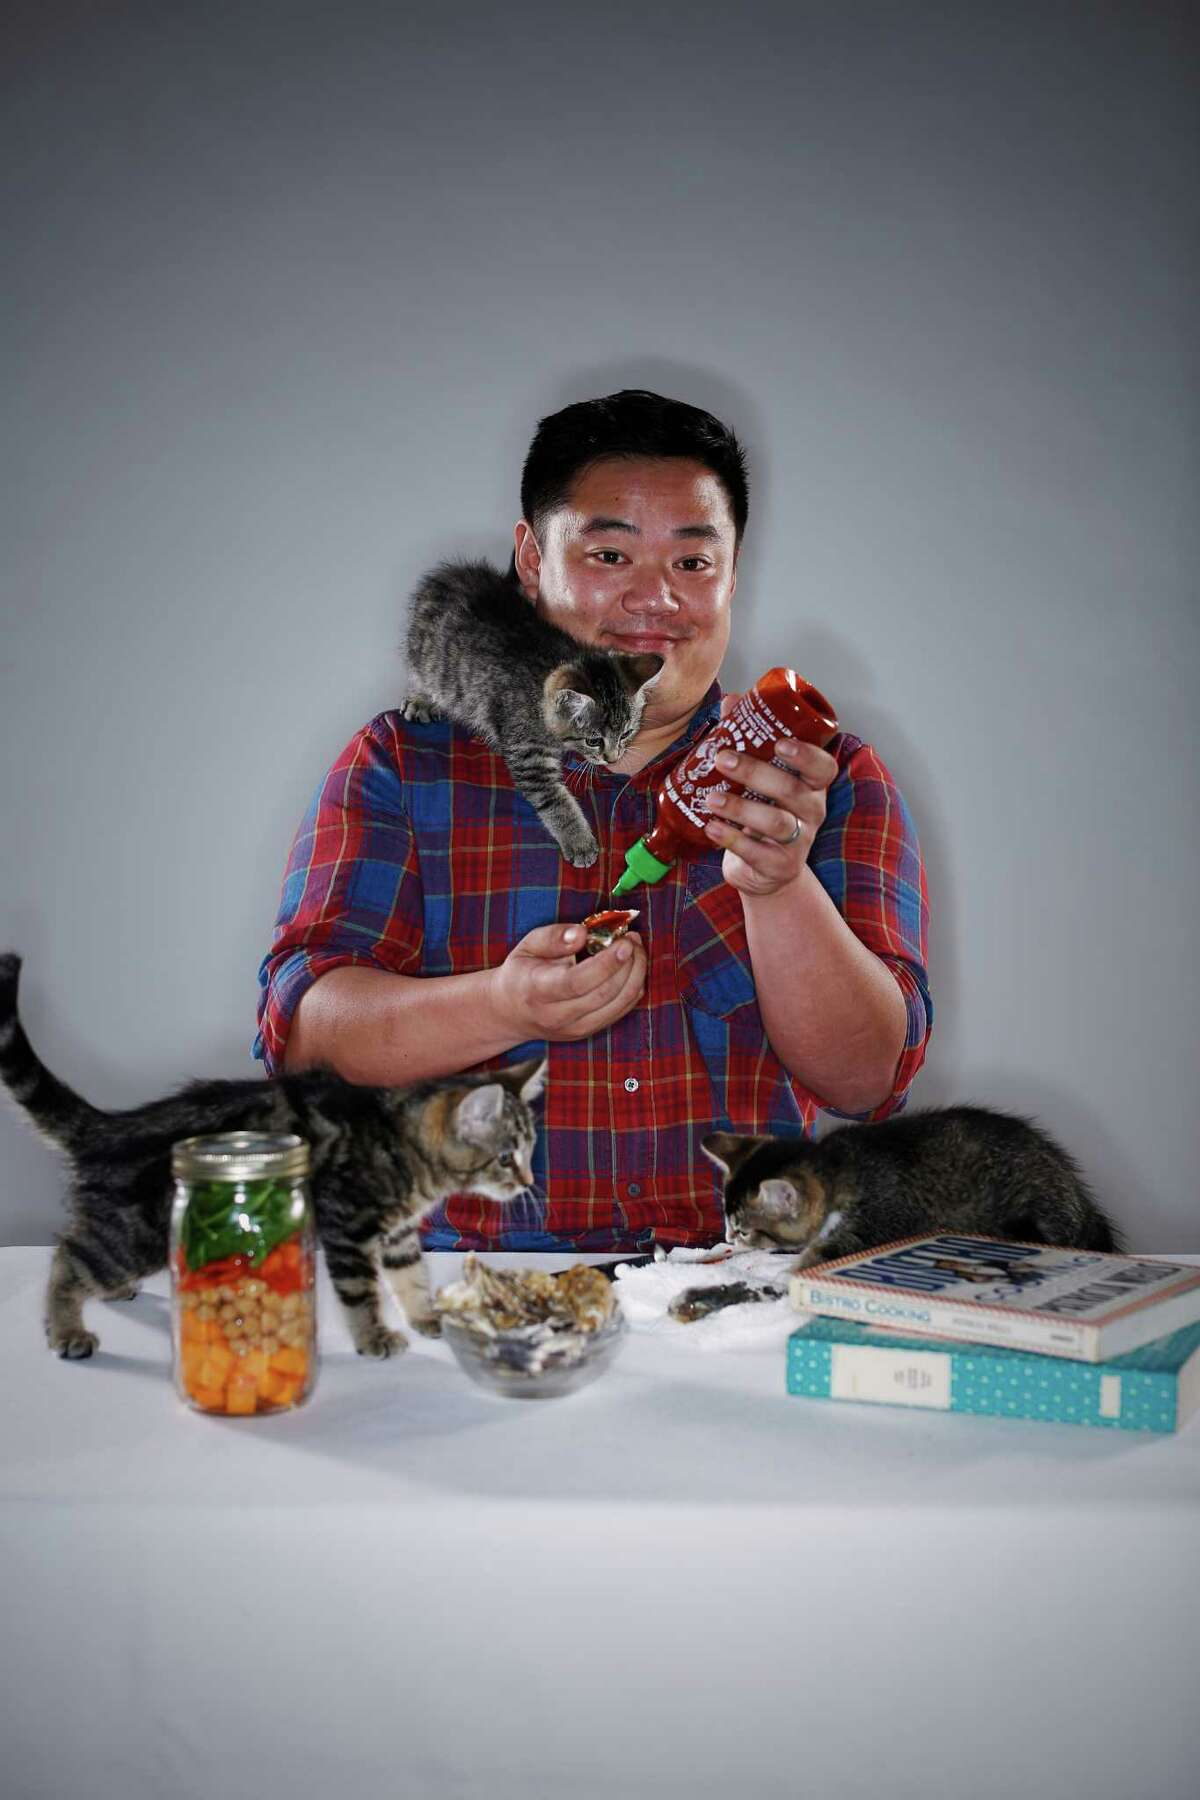 Lucky Peach editor Chris Ying gamely shows off this year's food trends. To represent cat cafes, volunteers from the San Francisco SPCA brought 2-month-old Pogo (left), Nerf and Frisbee to the photo shoot at The Chronicle. Each year the SPCA helps more than 5,000 animals find loving homes.Learn more and view available animals at www.sfspca.org/adopt.